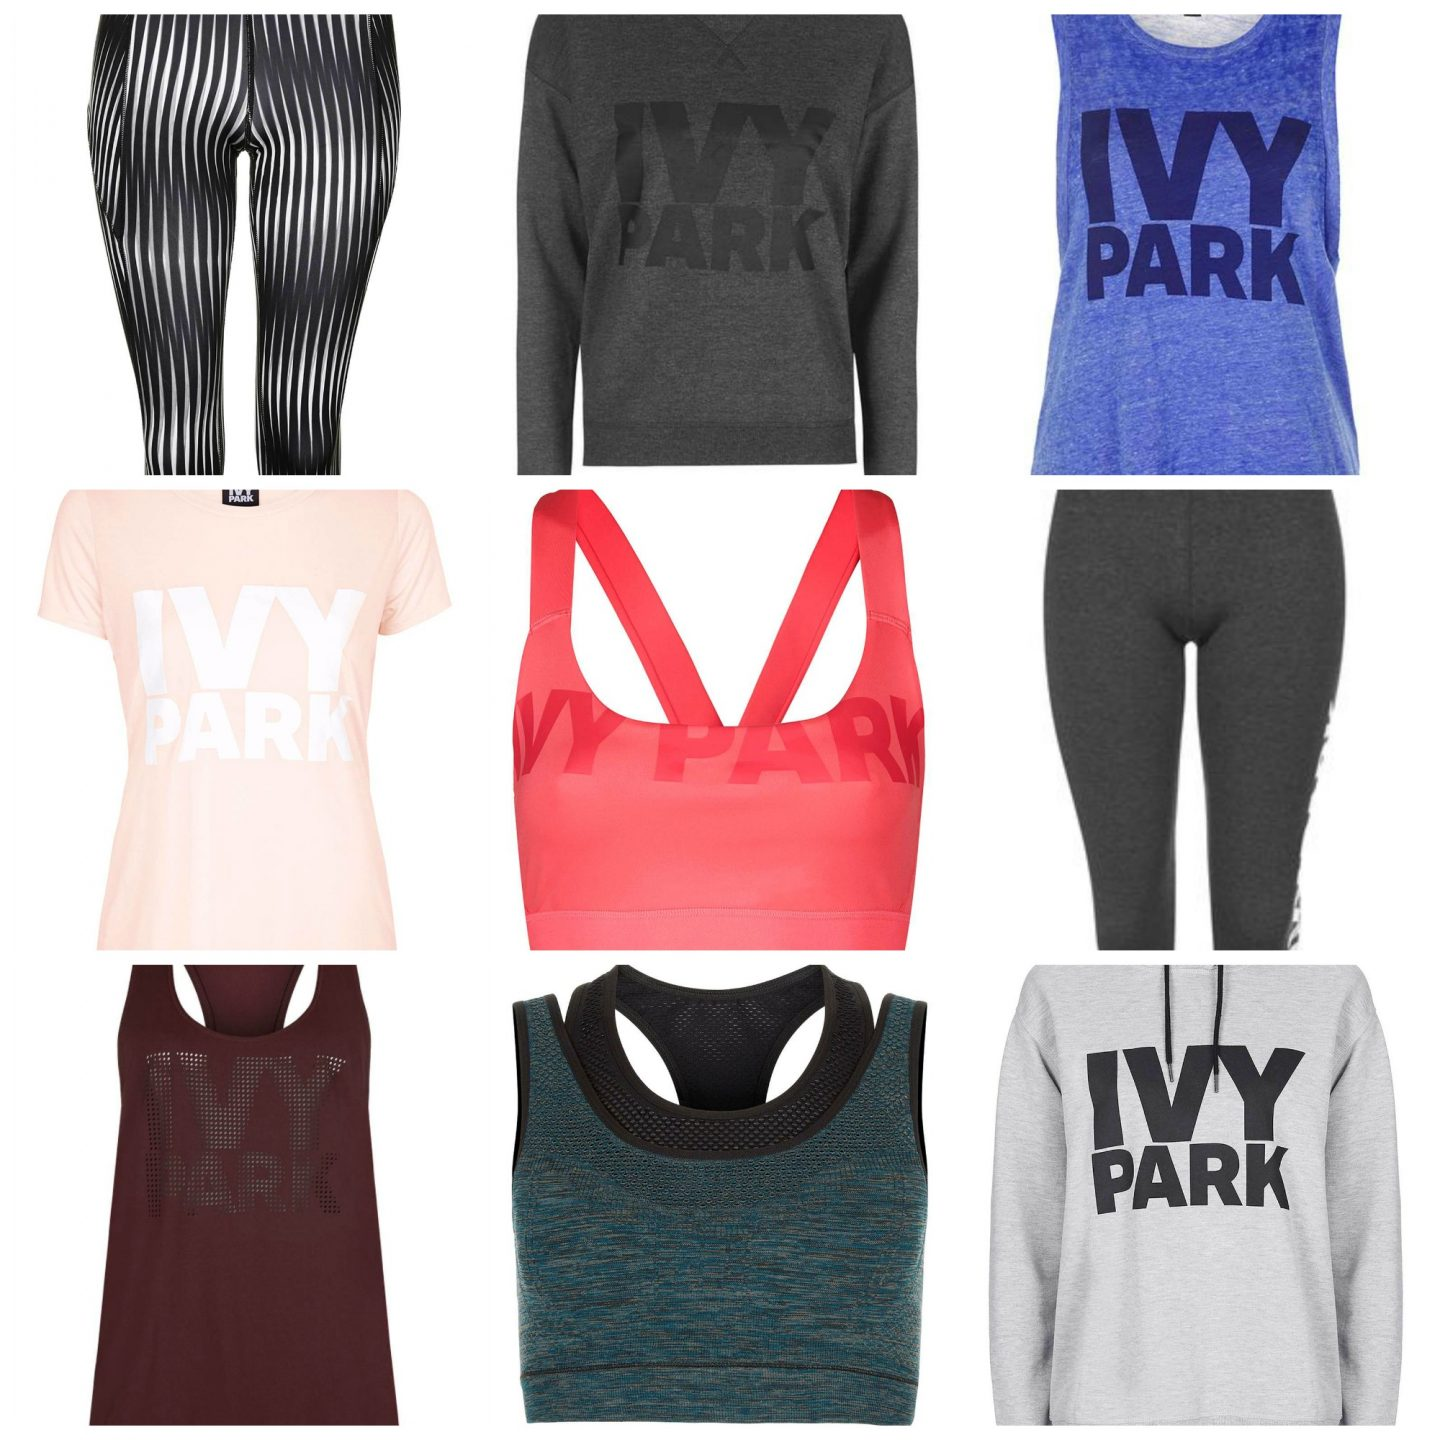 A Look at Ivy Park A/W 2016